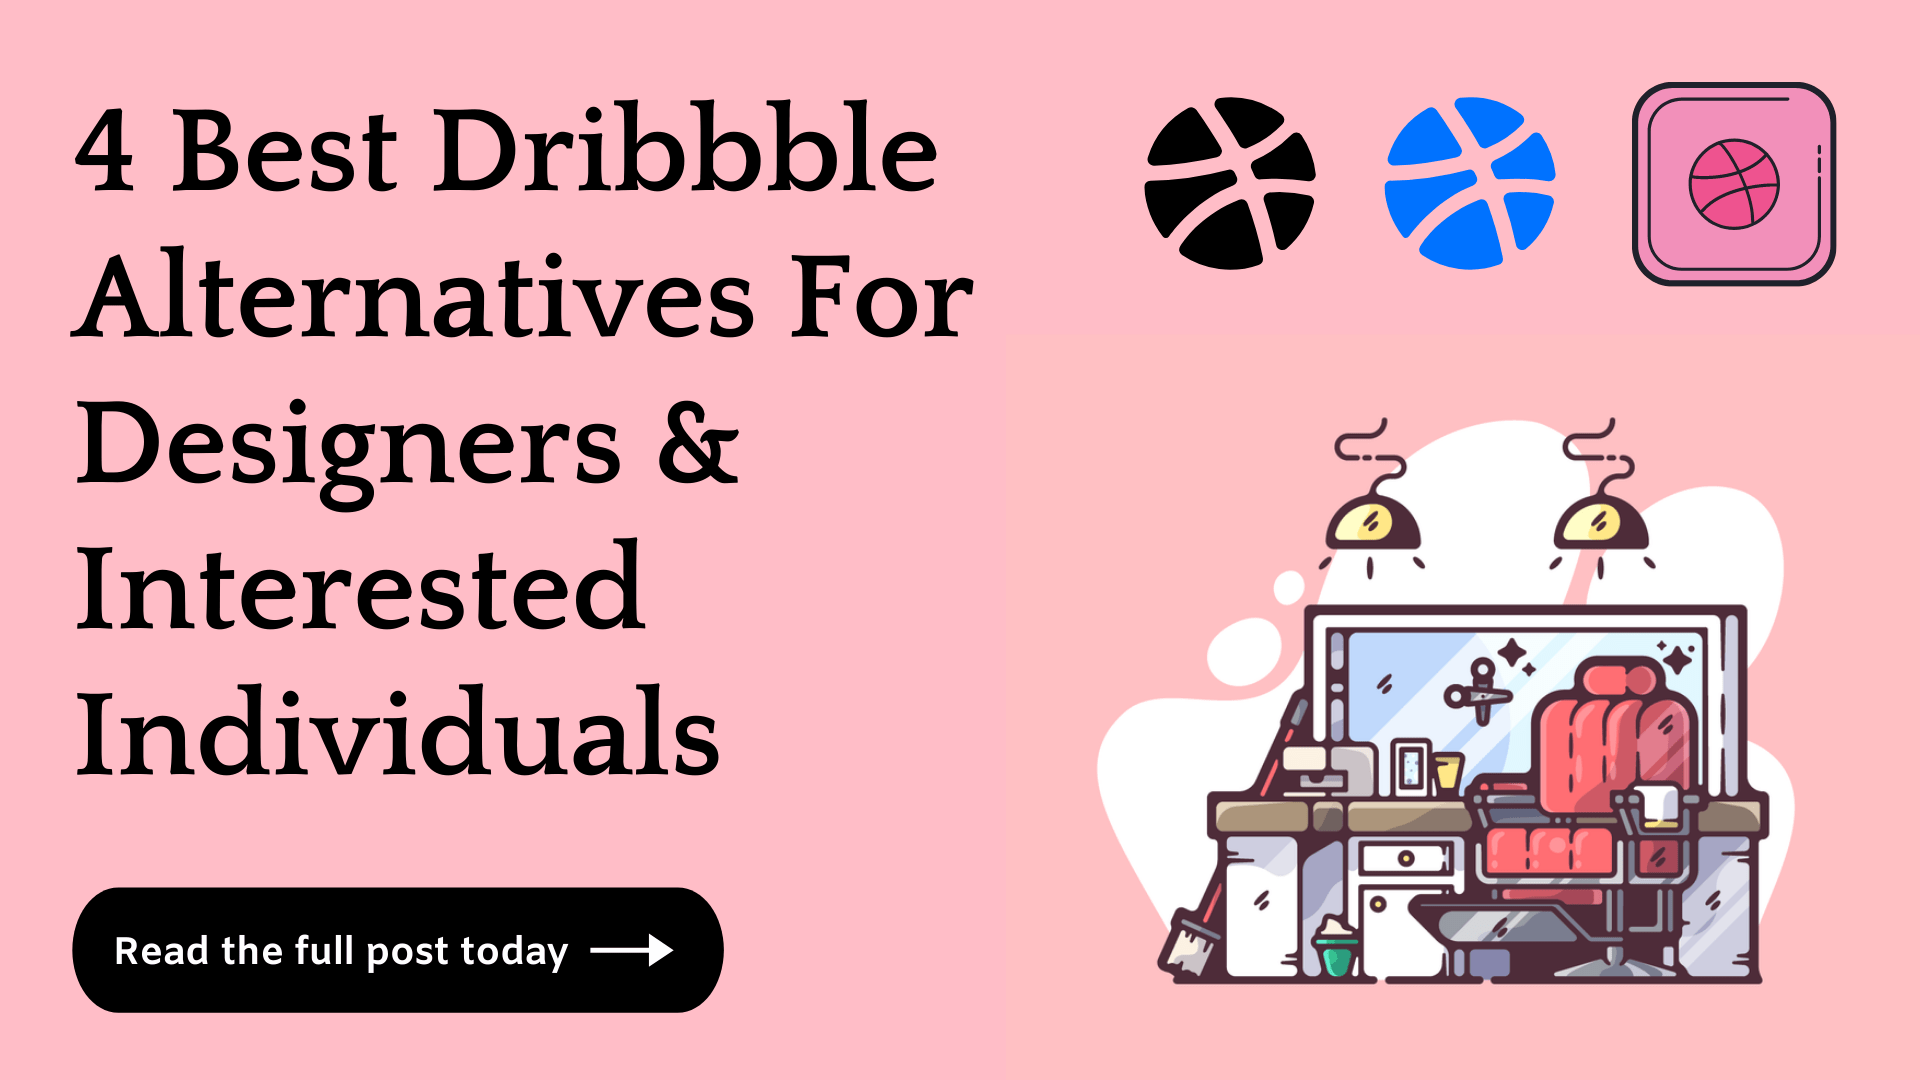 4 Best Dribbble Alternatives For Designers & Hirers (2021)